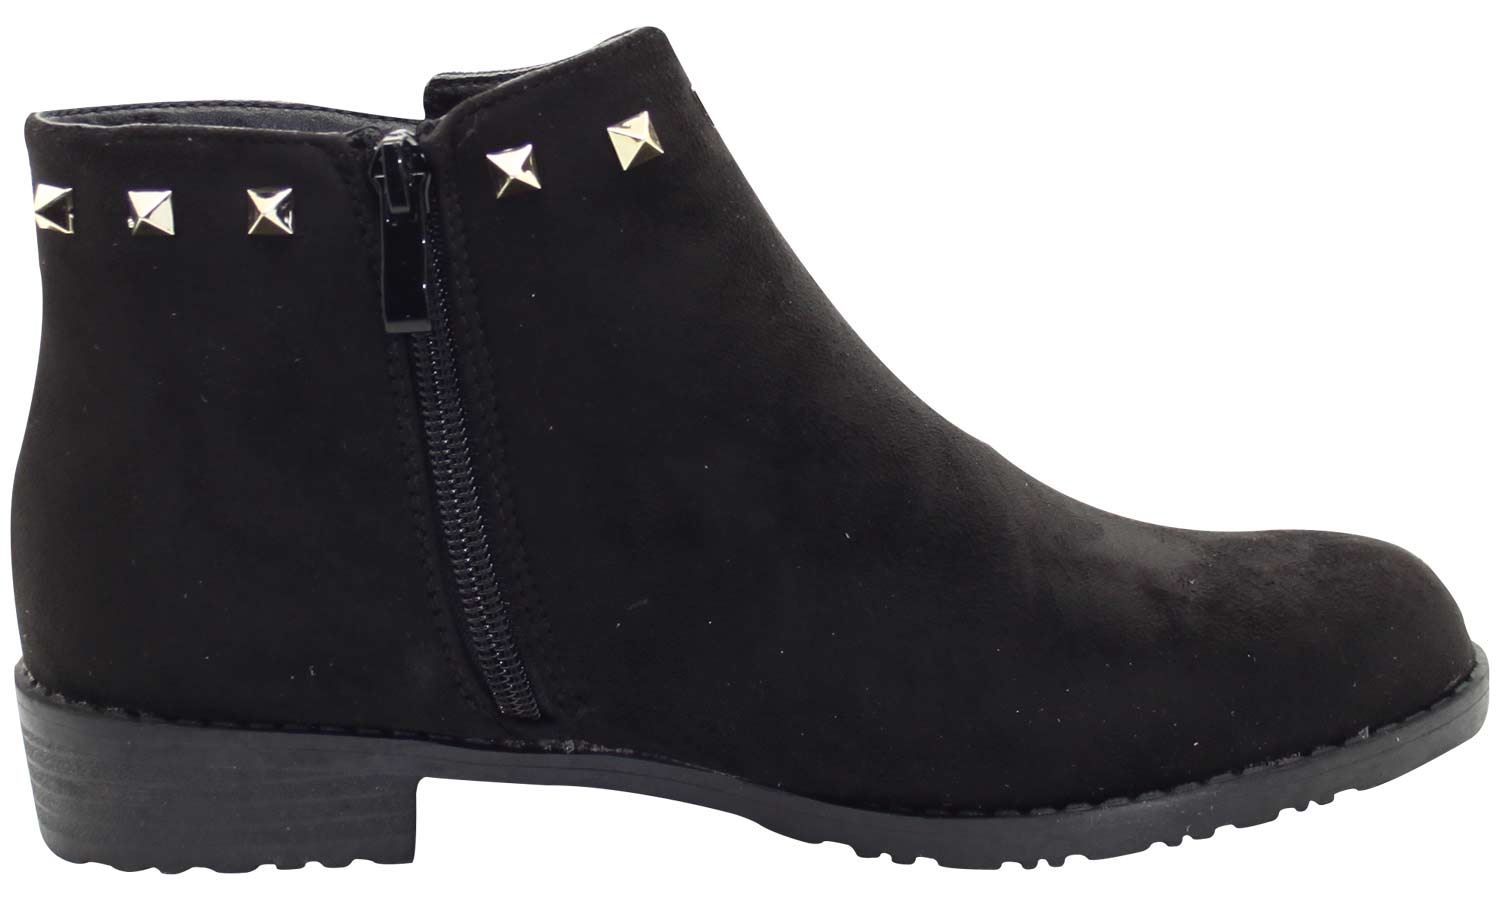 New-Women-Chelsea-Ankle-Boots-Winter-Block-Heel-Ladies-Biker-Style-Boots thumbnail 20